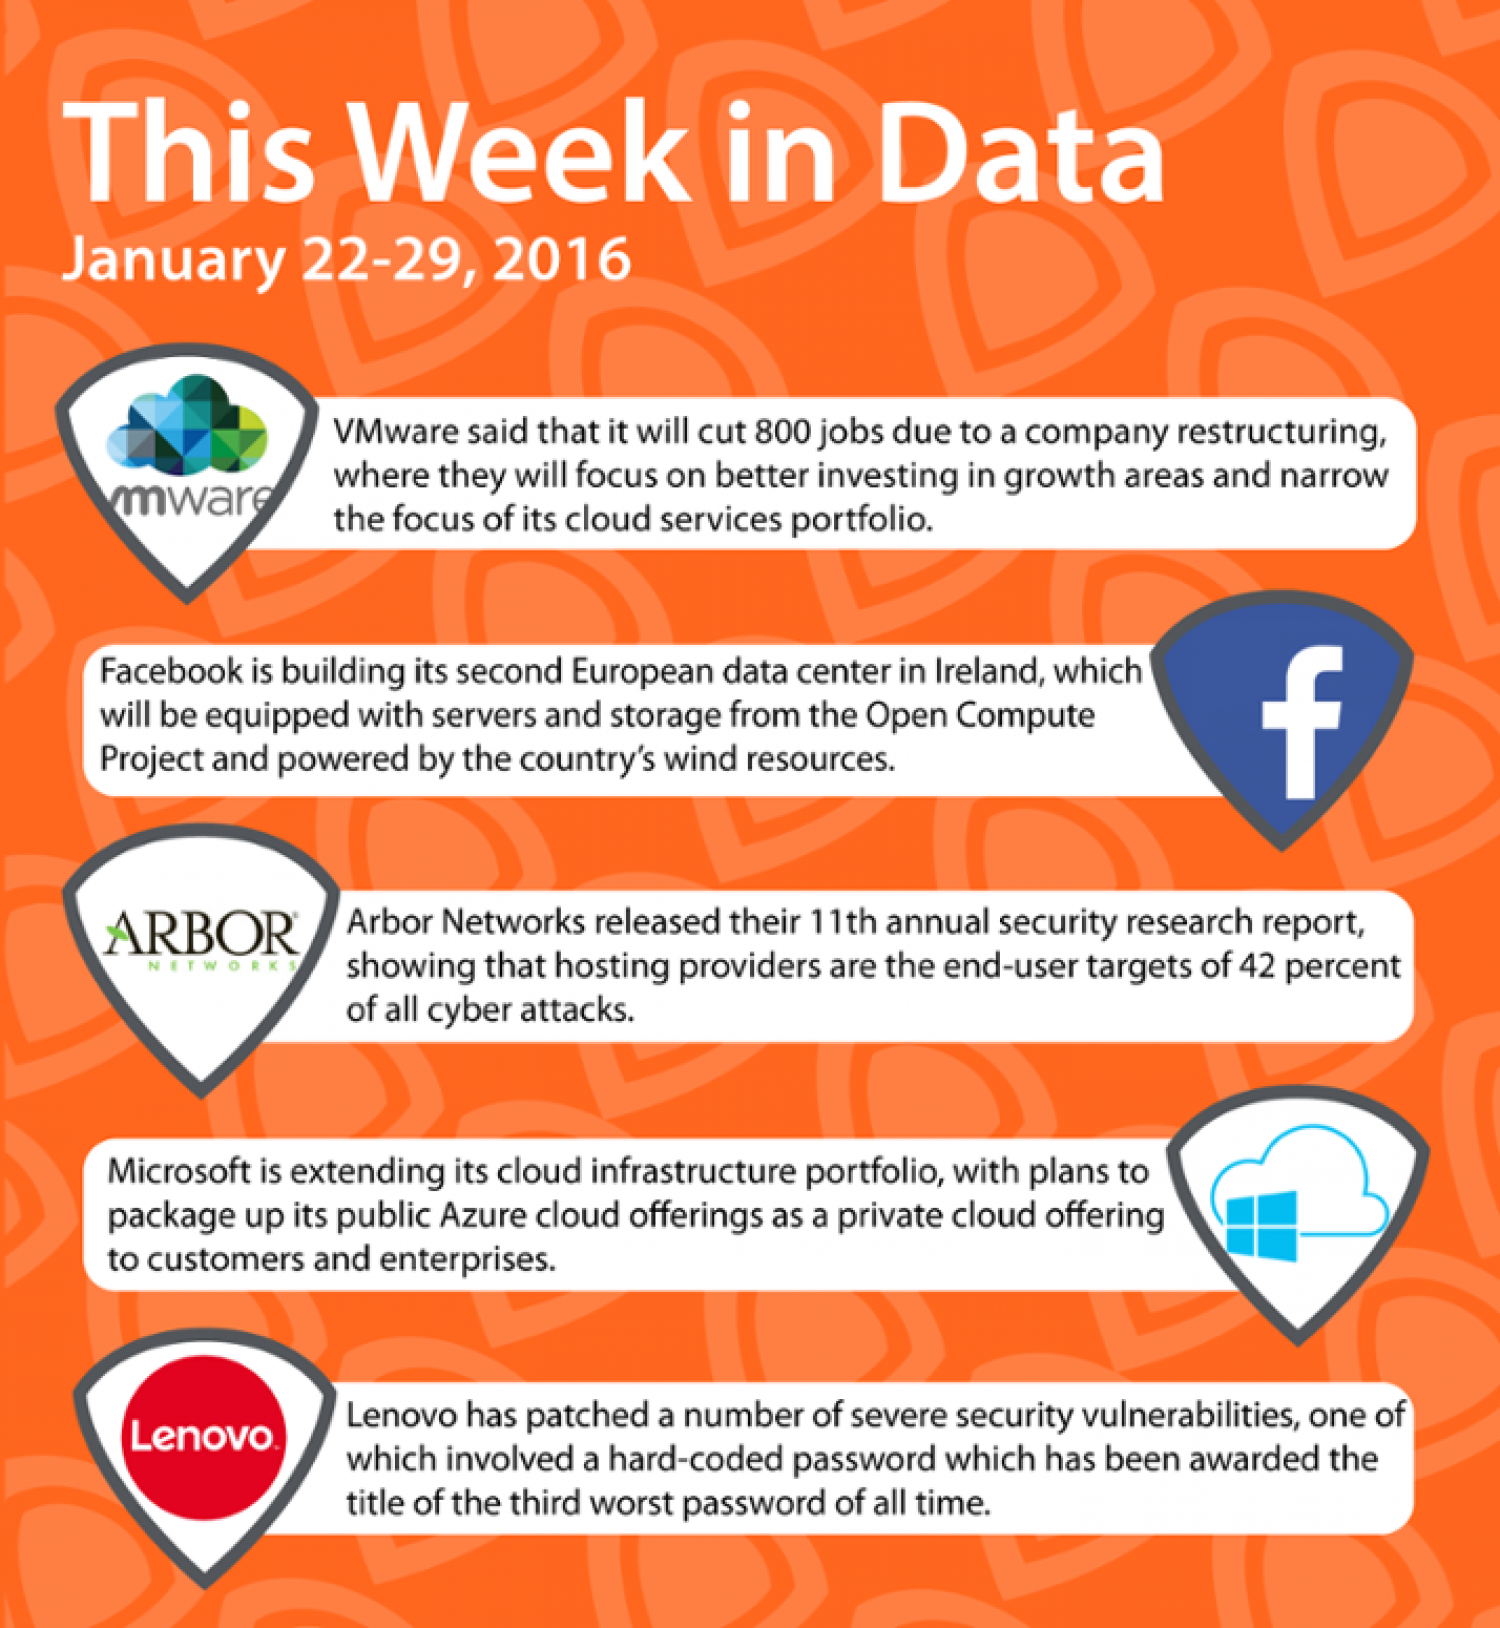 This Week in Data (January 29, 2016) Infographic